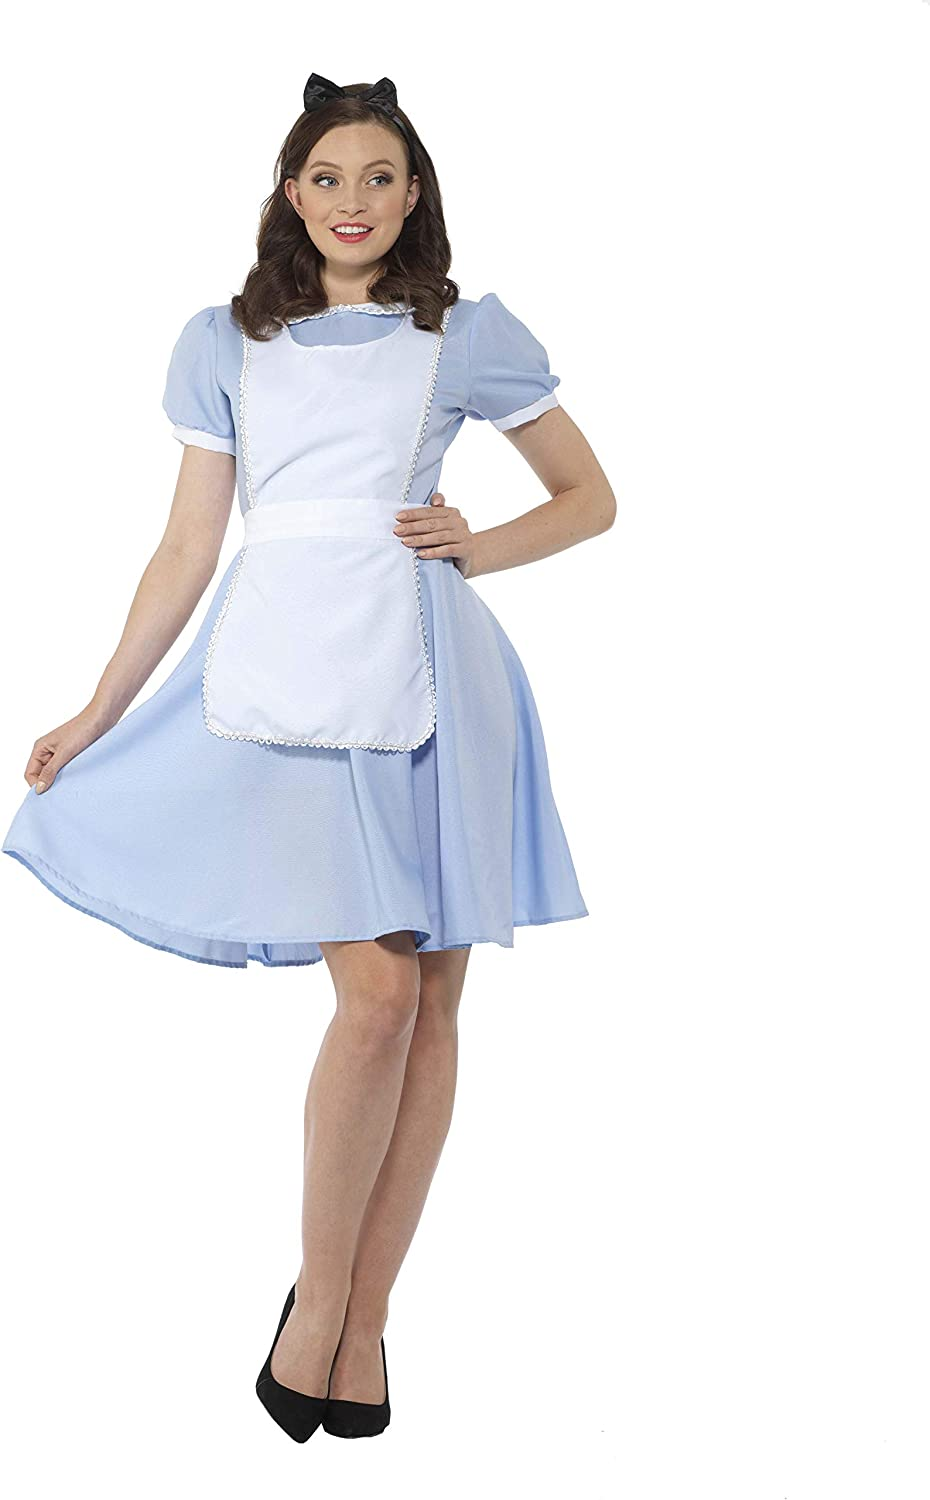 Fairytale Cosplay Costume - Halloween Womens Blue White Maid Dress Set,